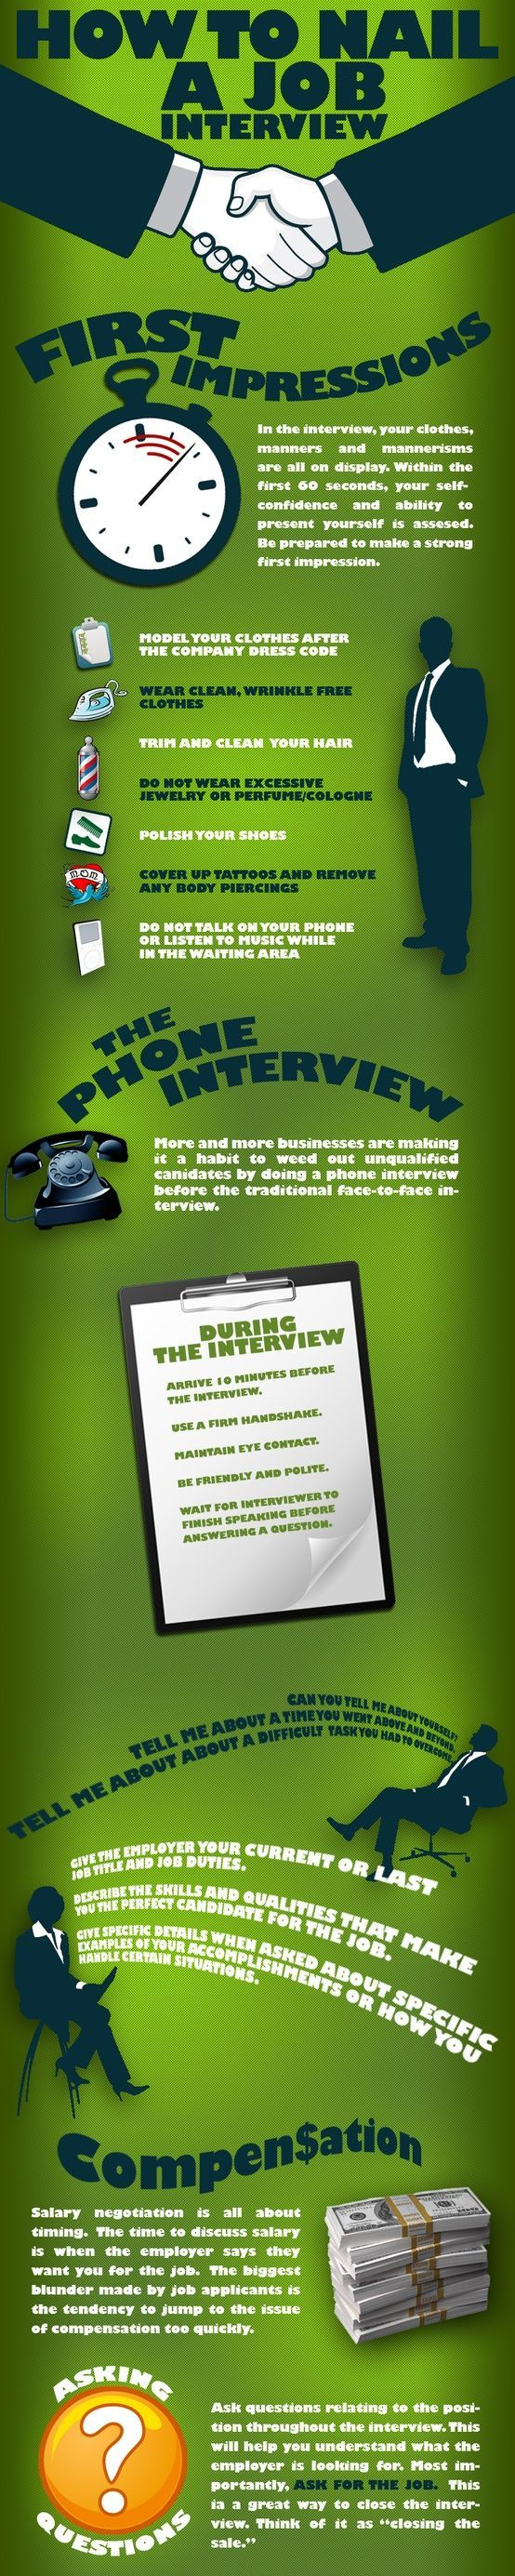 best ideas about job interview hair business how to interview top tips for acing a job interview infographic